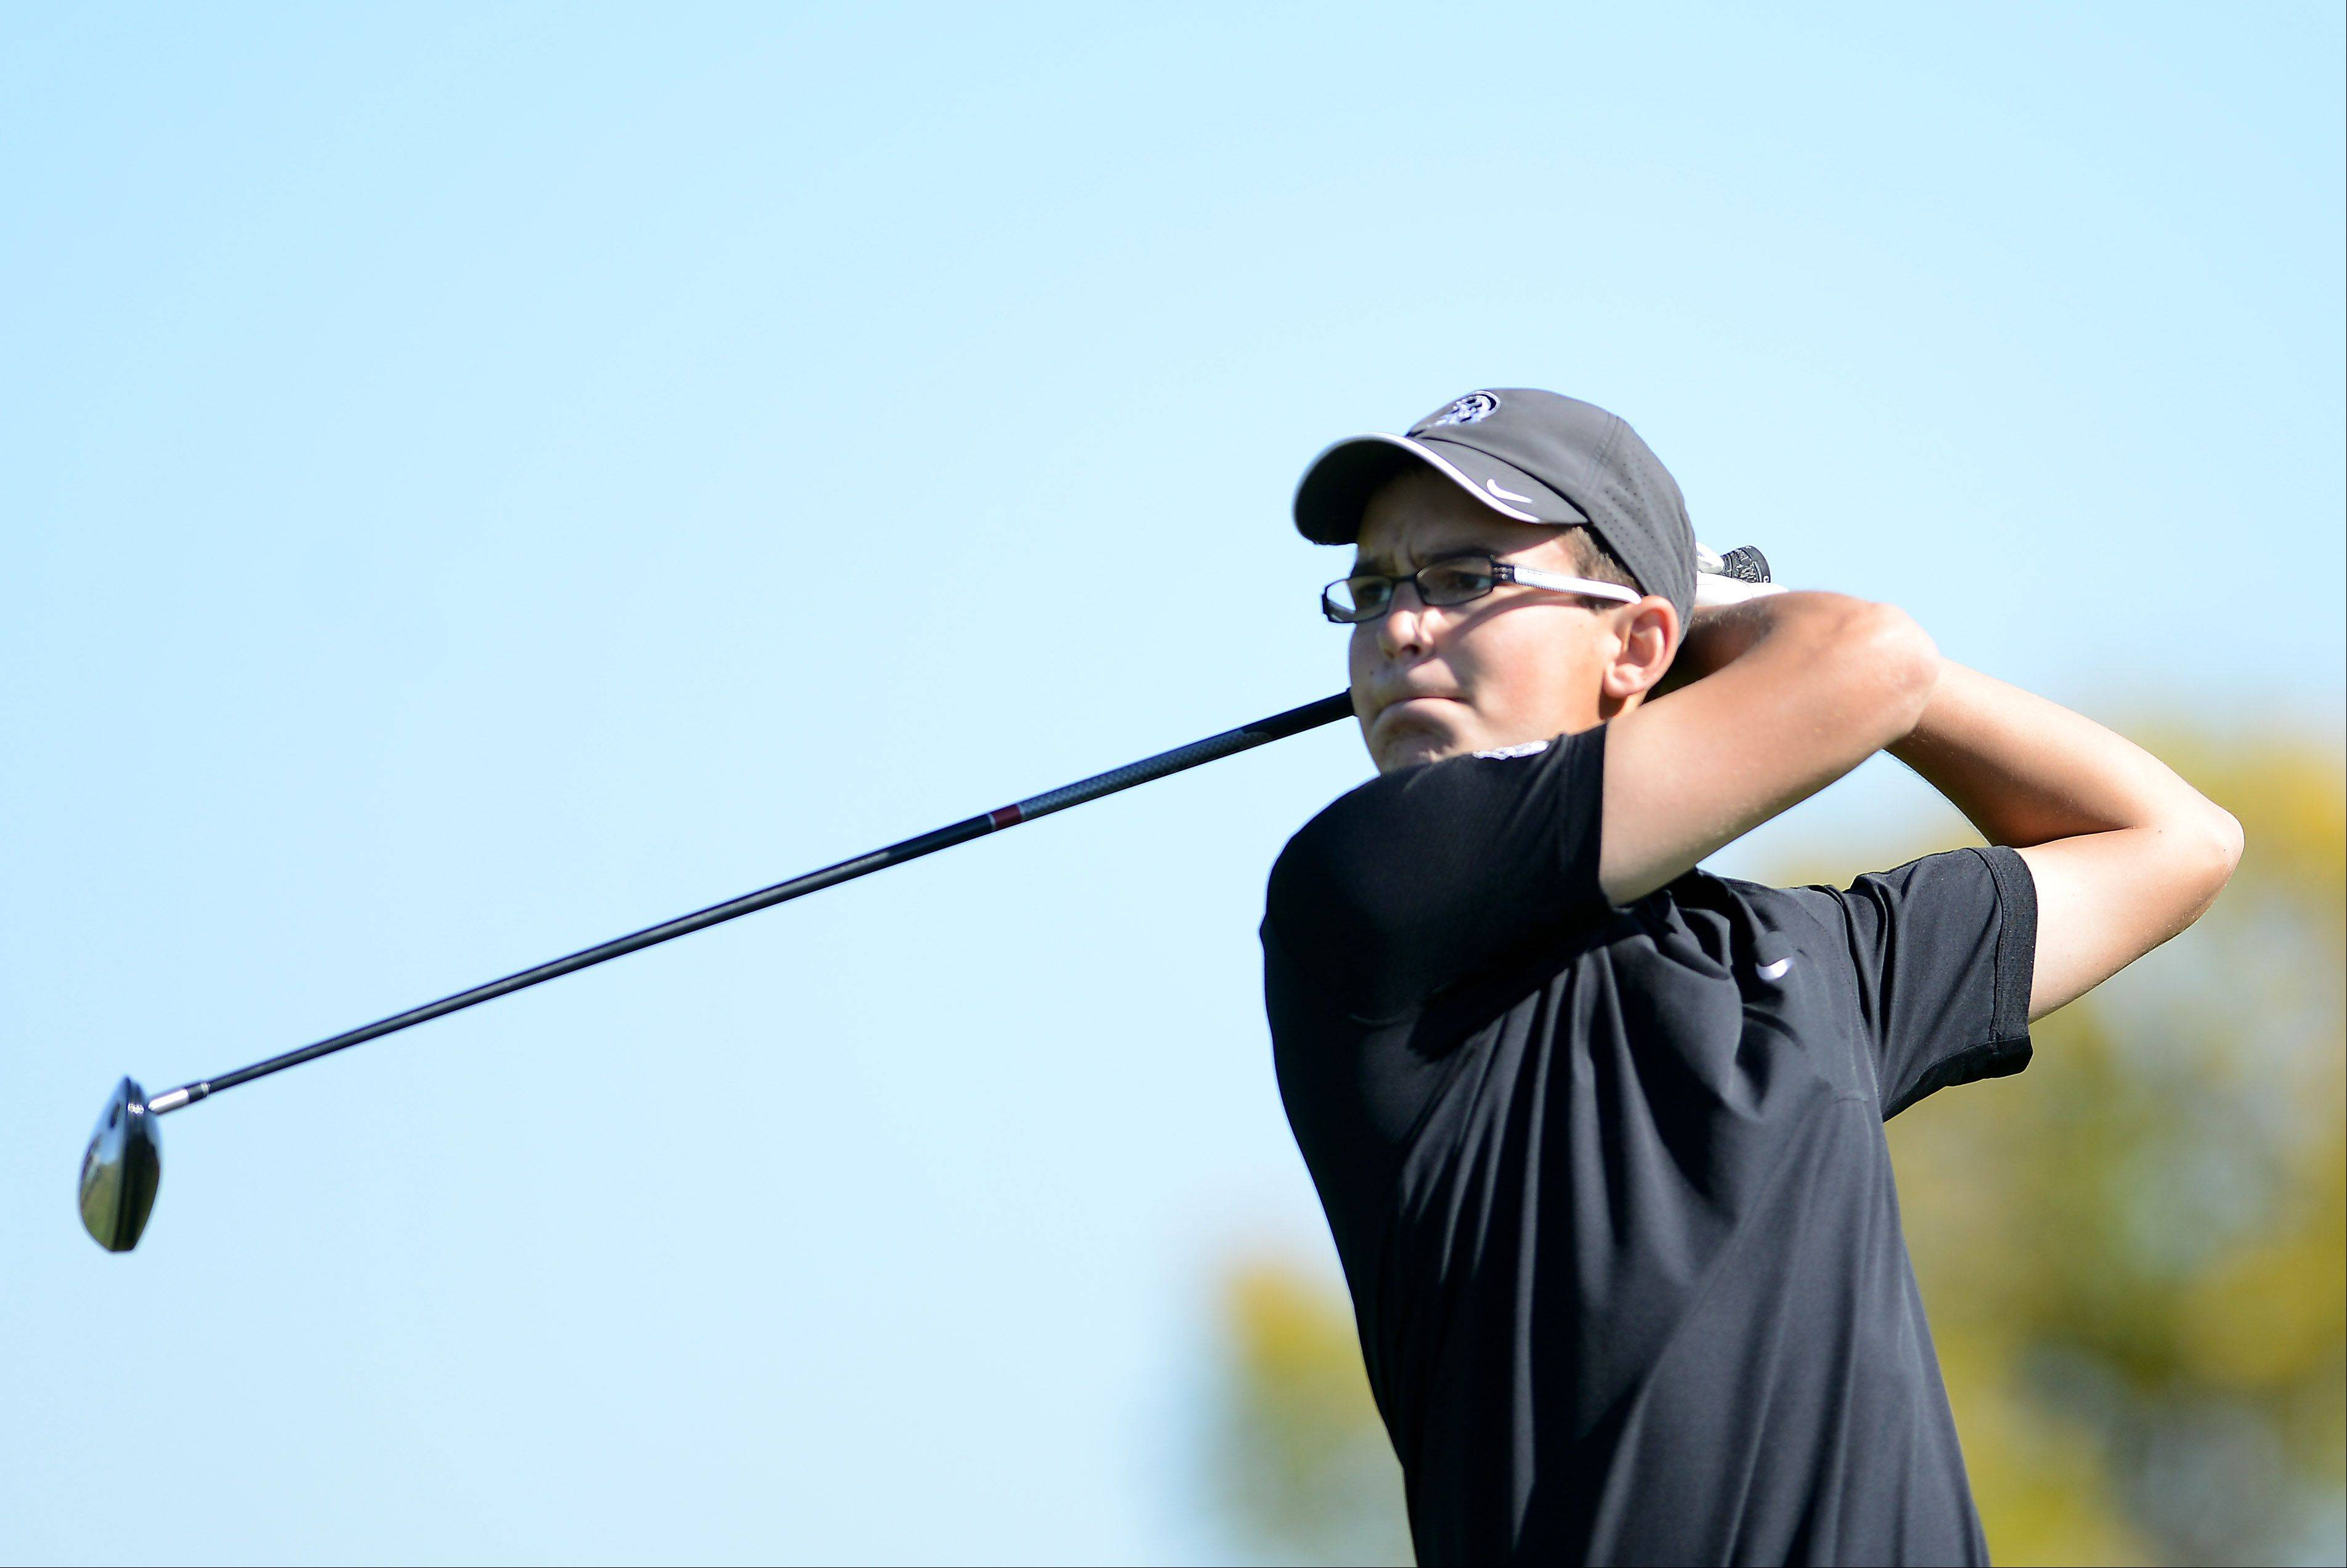 Kaneland's Brody Kuhar tees off on the sixth during Tuesday's regional golf action at Phillips Park in Aurora.